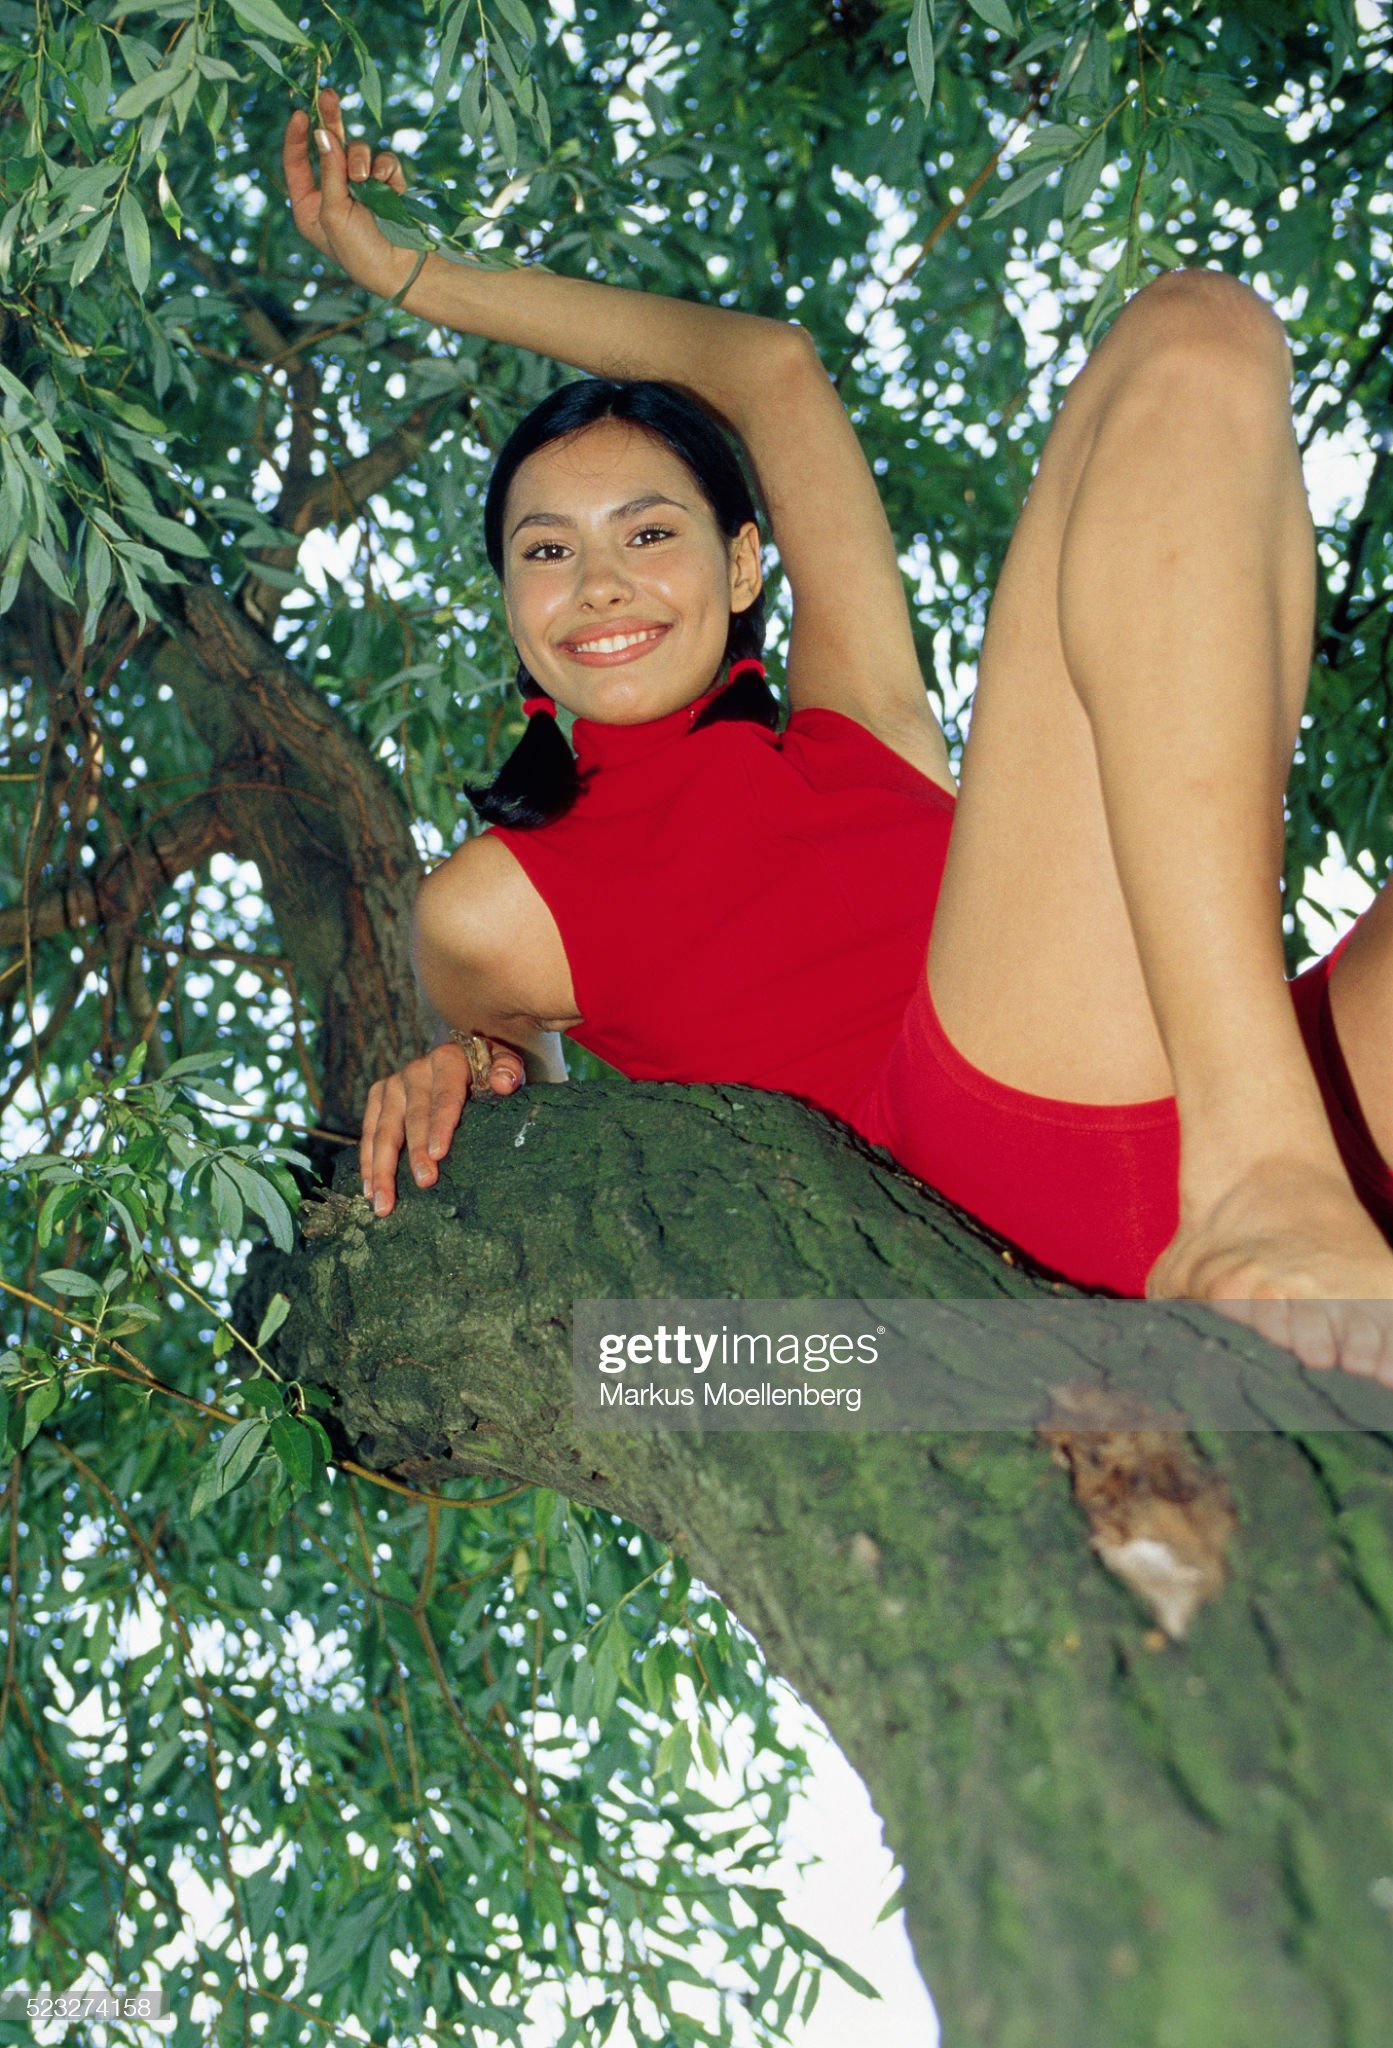 https://media.gettyimages.com/photos/darkhaired-young-woman-with-pigtails-on-a-tree-picture-id523274158?s=2048x2048